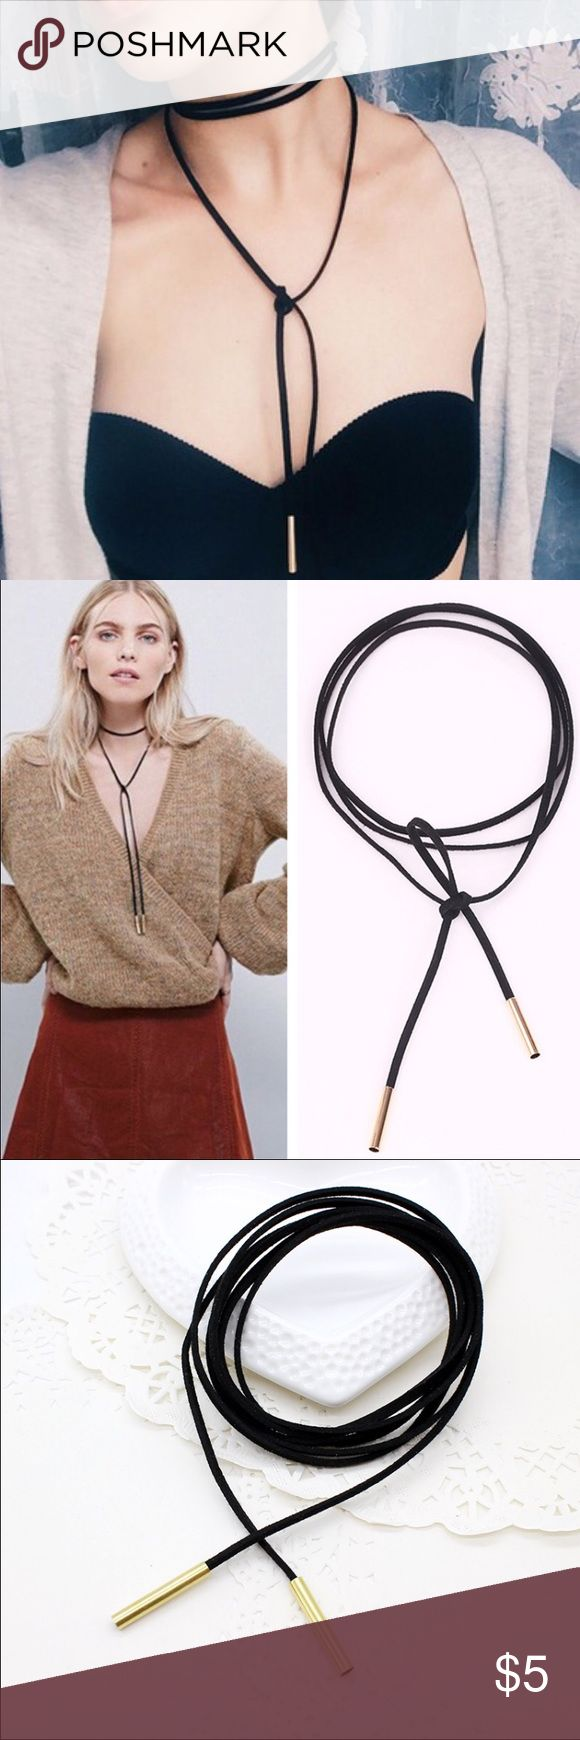 """Black & Gold Long Cord Bow Knot Choker Necklace Black & Gold Long """"Leather"""" Cord Bow Knot Choker Necklace. This is NOT real leather - I will not advertise / sell real leather in my closet.  This Necklace is approximately 59 inches long. ❤️ONLY 6 AVAILABLE❤️ ✨Price is firm unless bundled✨ Jewelry Necklaces"""